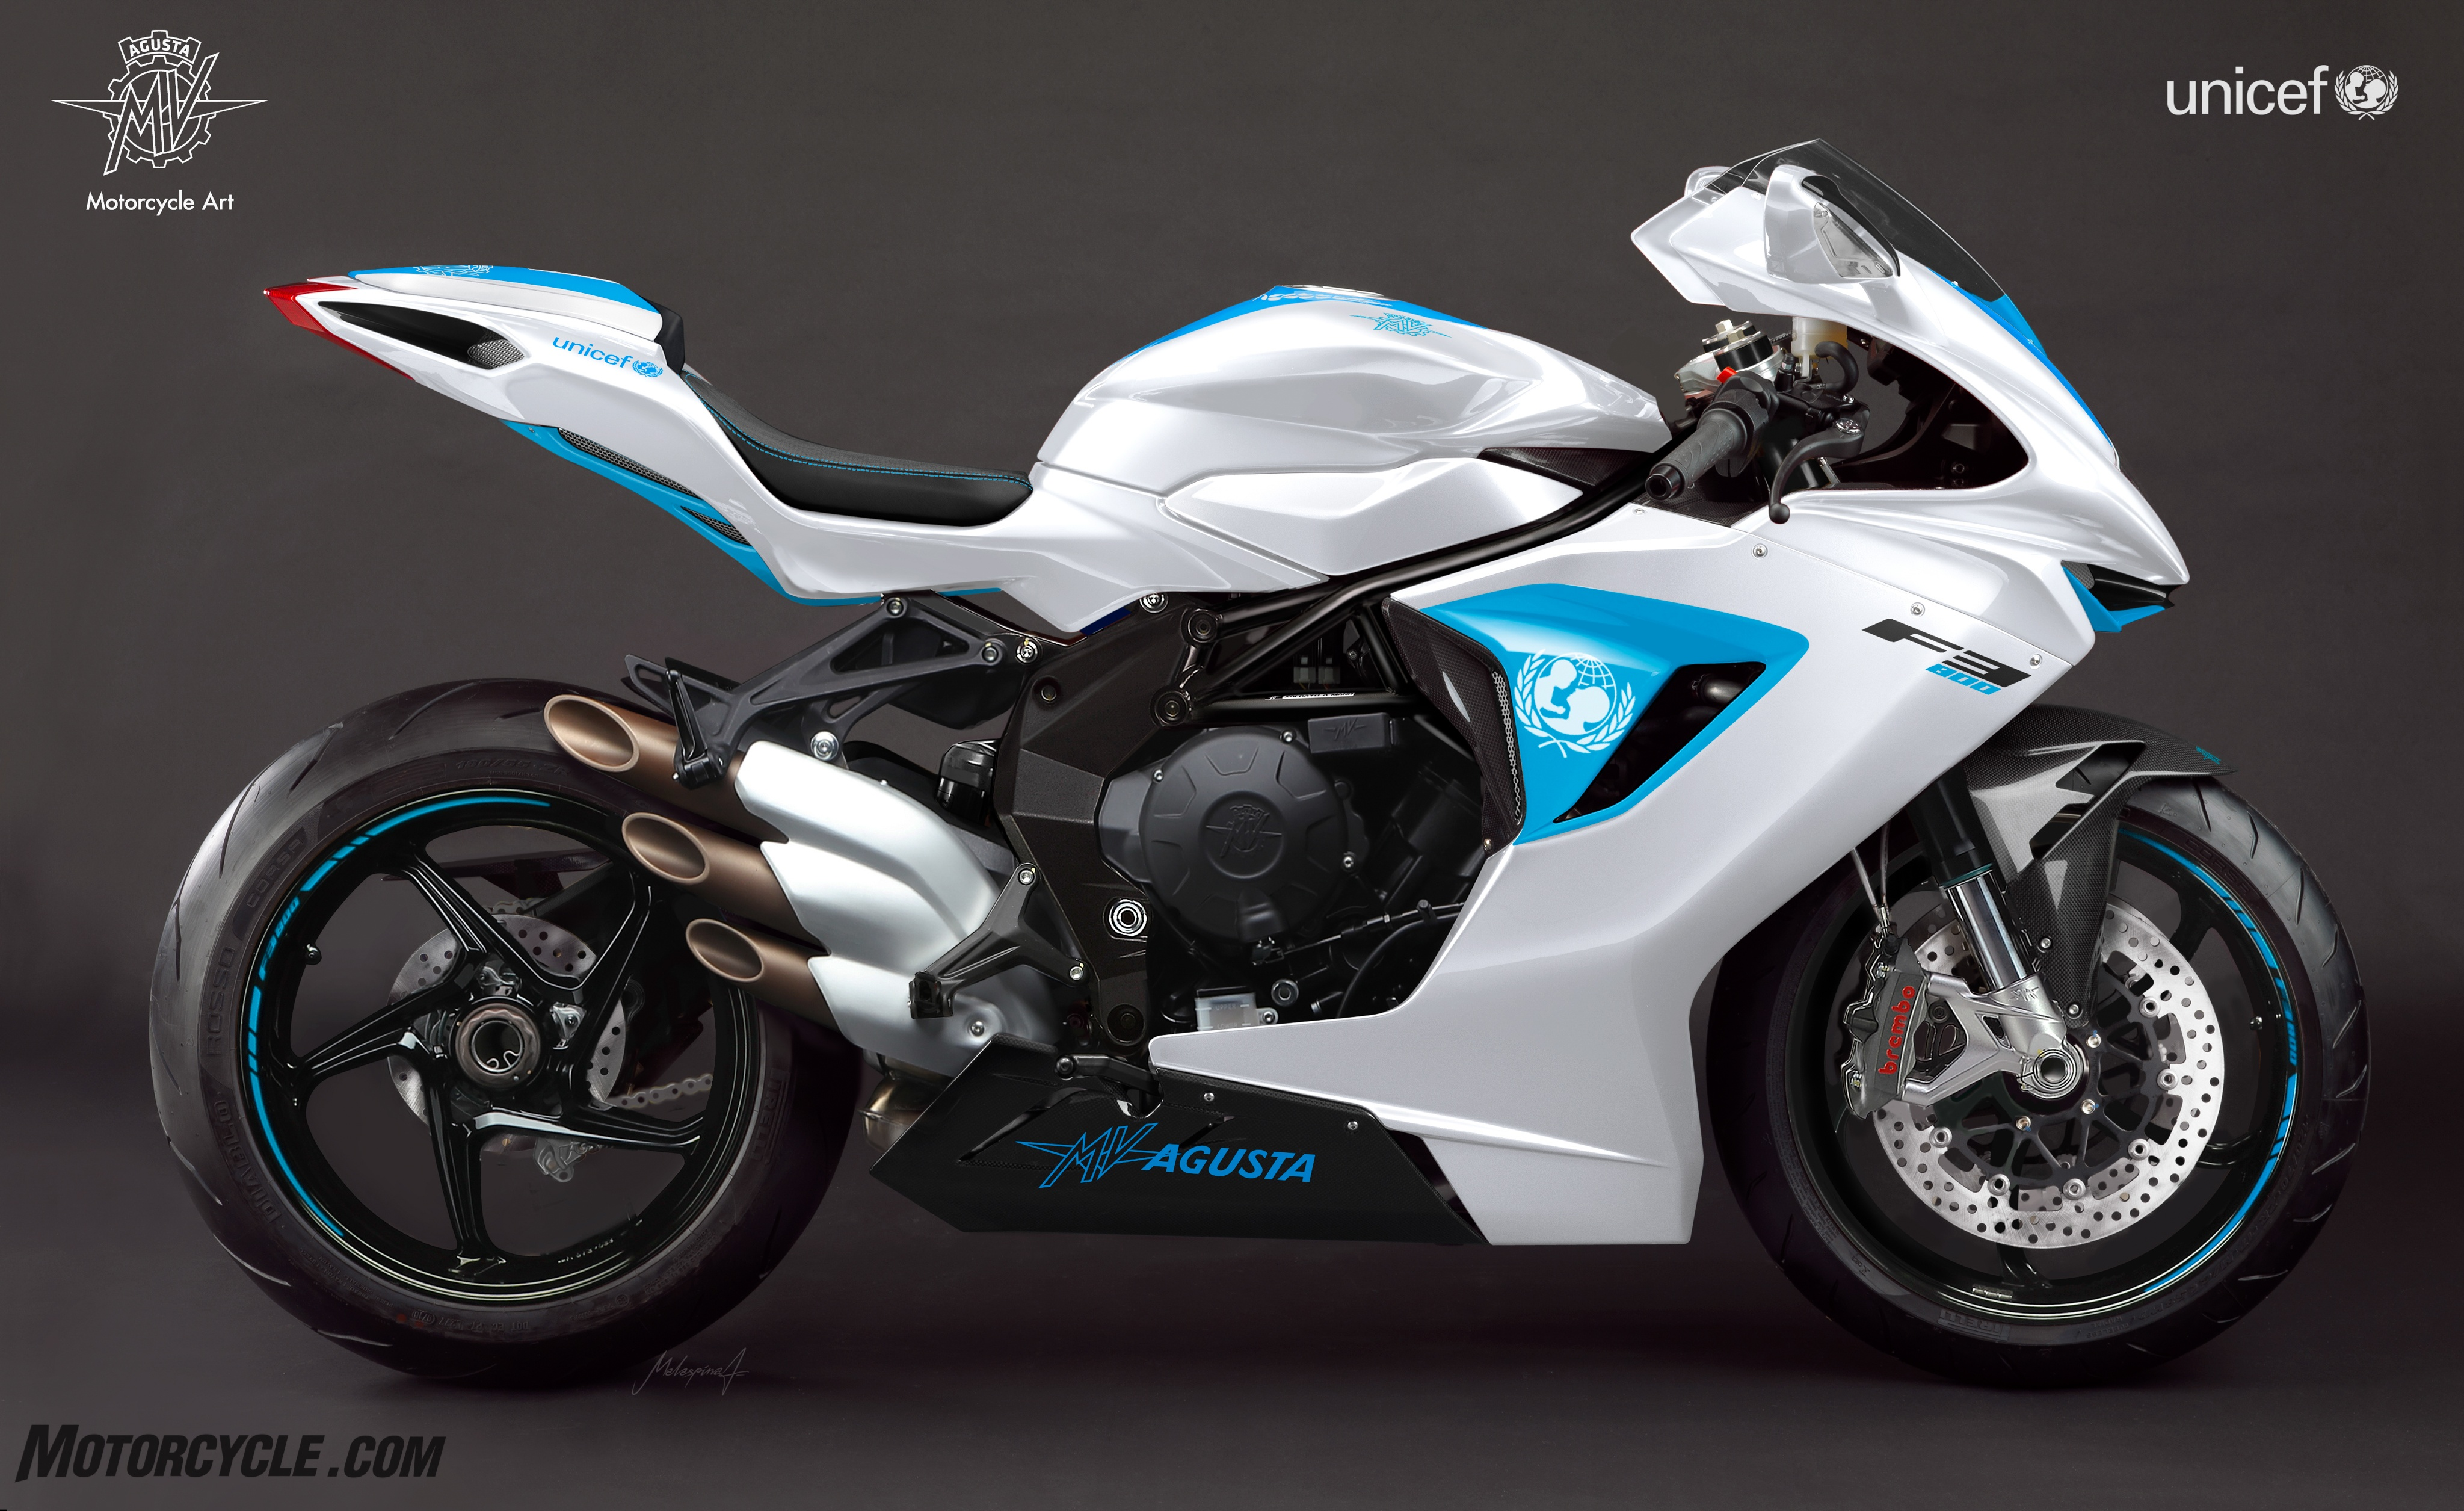 MV Agusta Provides One-of-a-Kind F3 for UNICEF Fundraiser - Motorcycle.com News